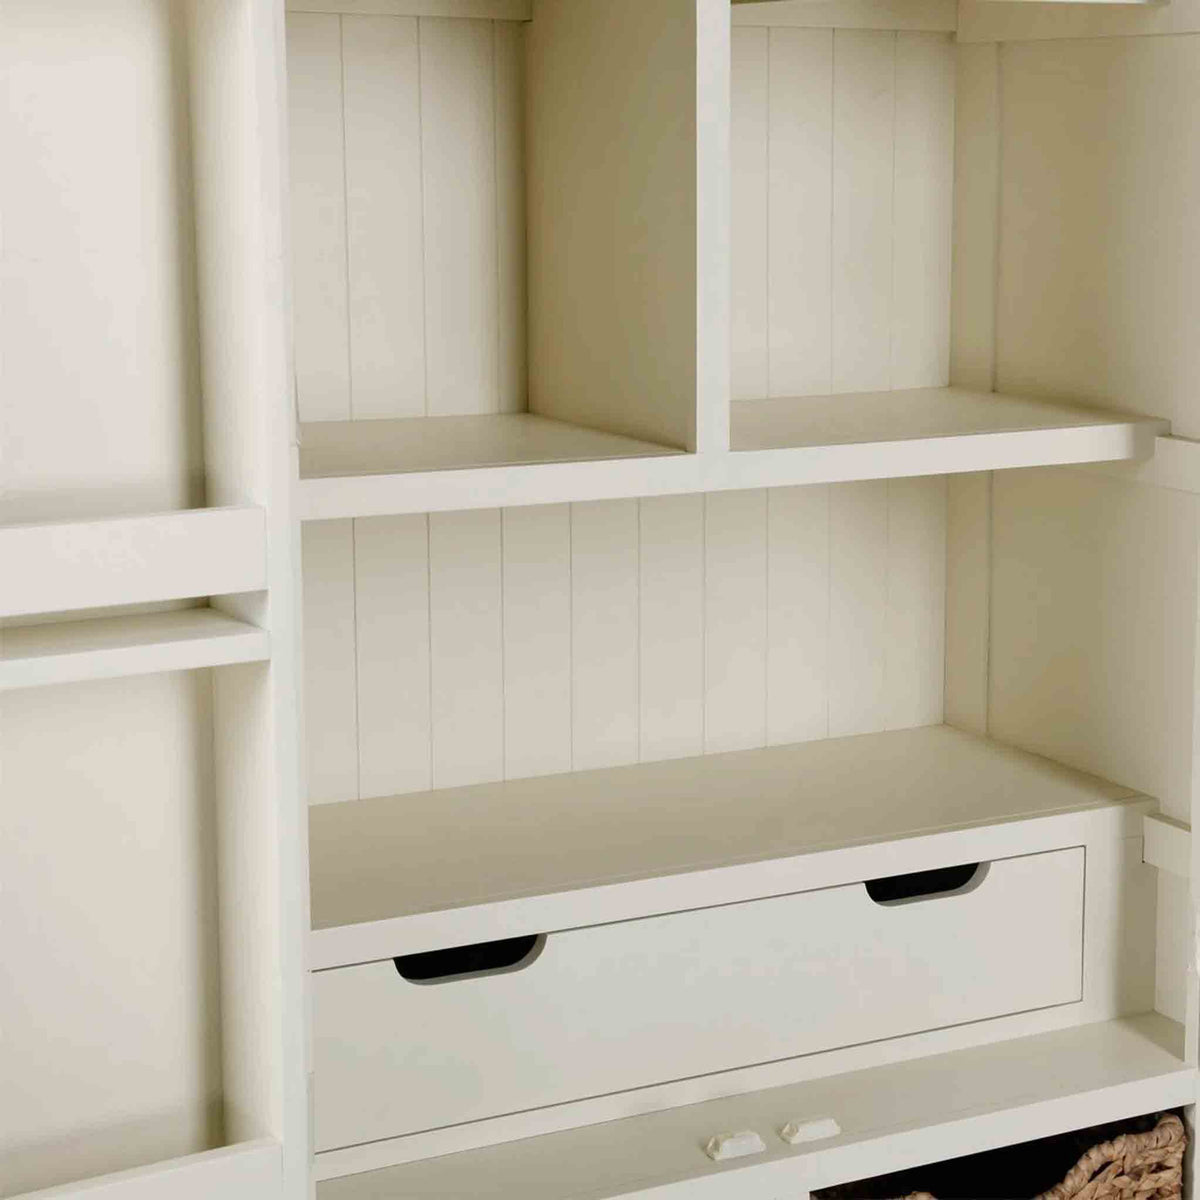 Close up of shelves on The Daymer Cream Kitchen Larger Storage Cupboard